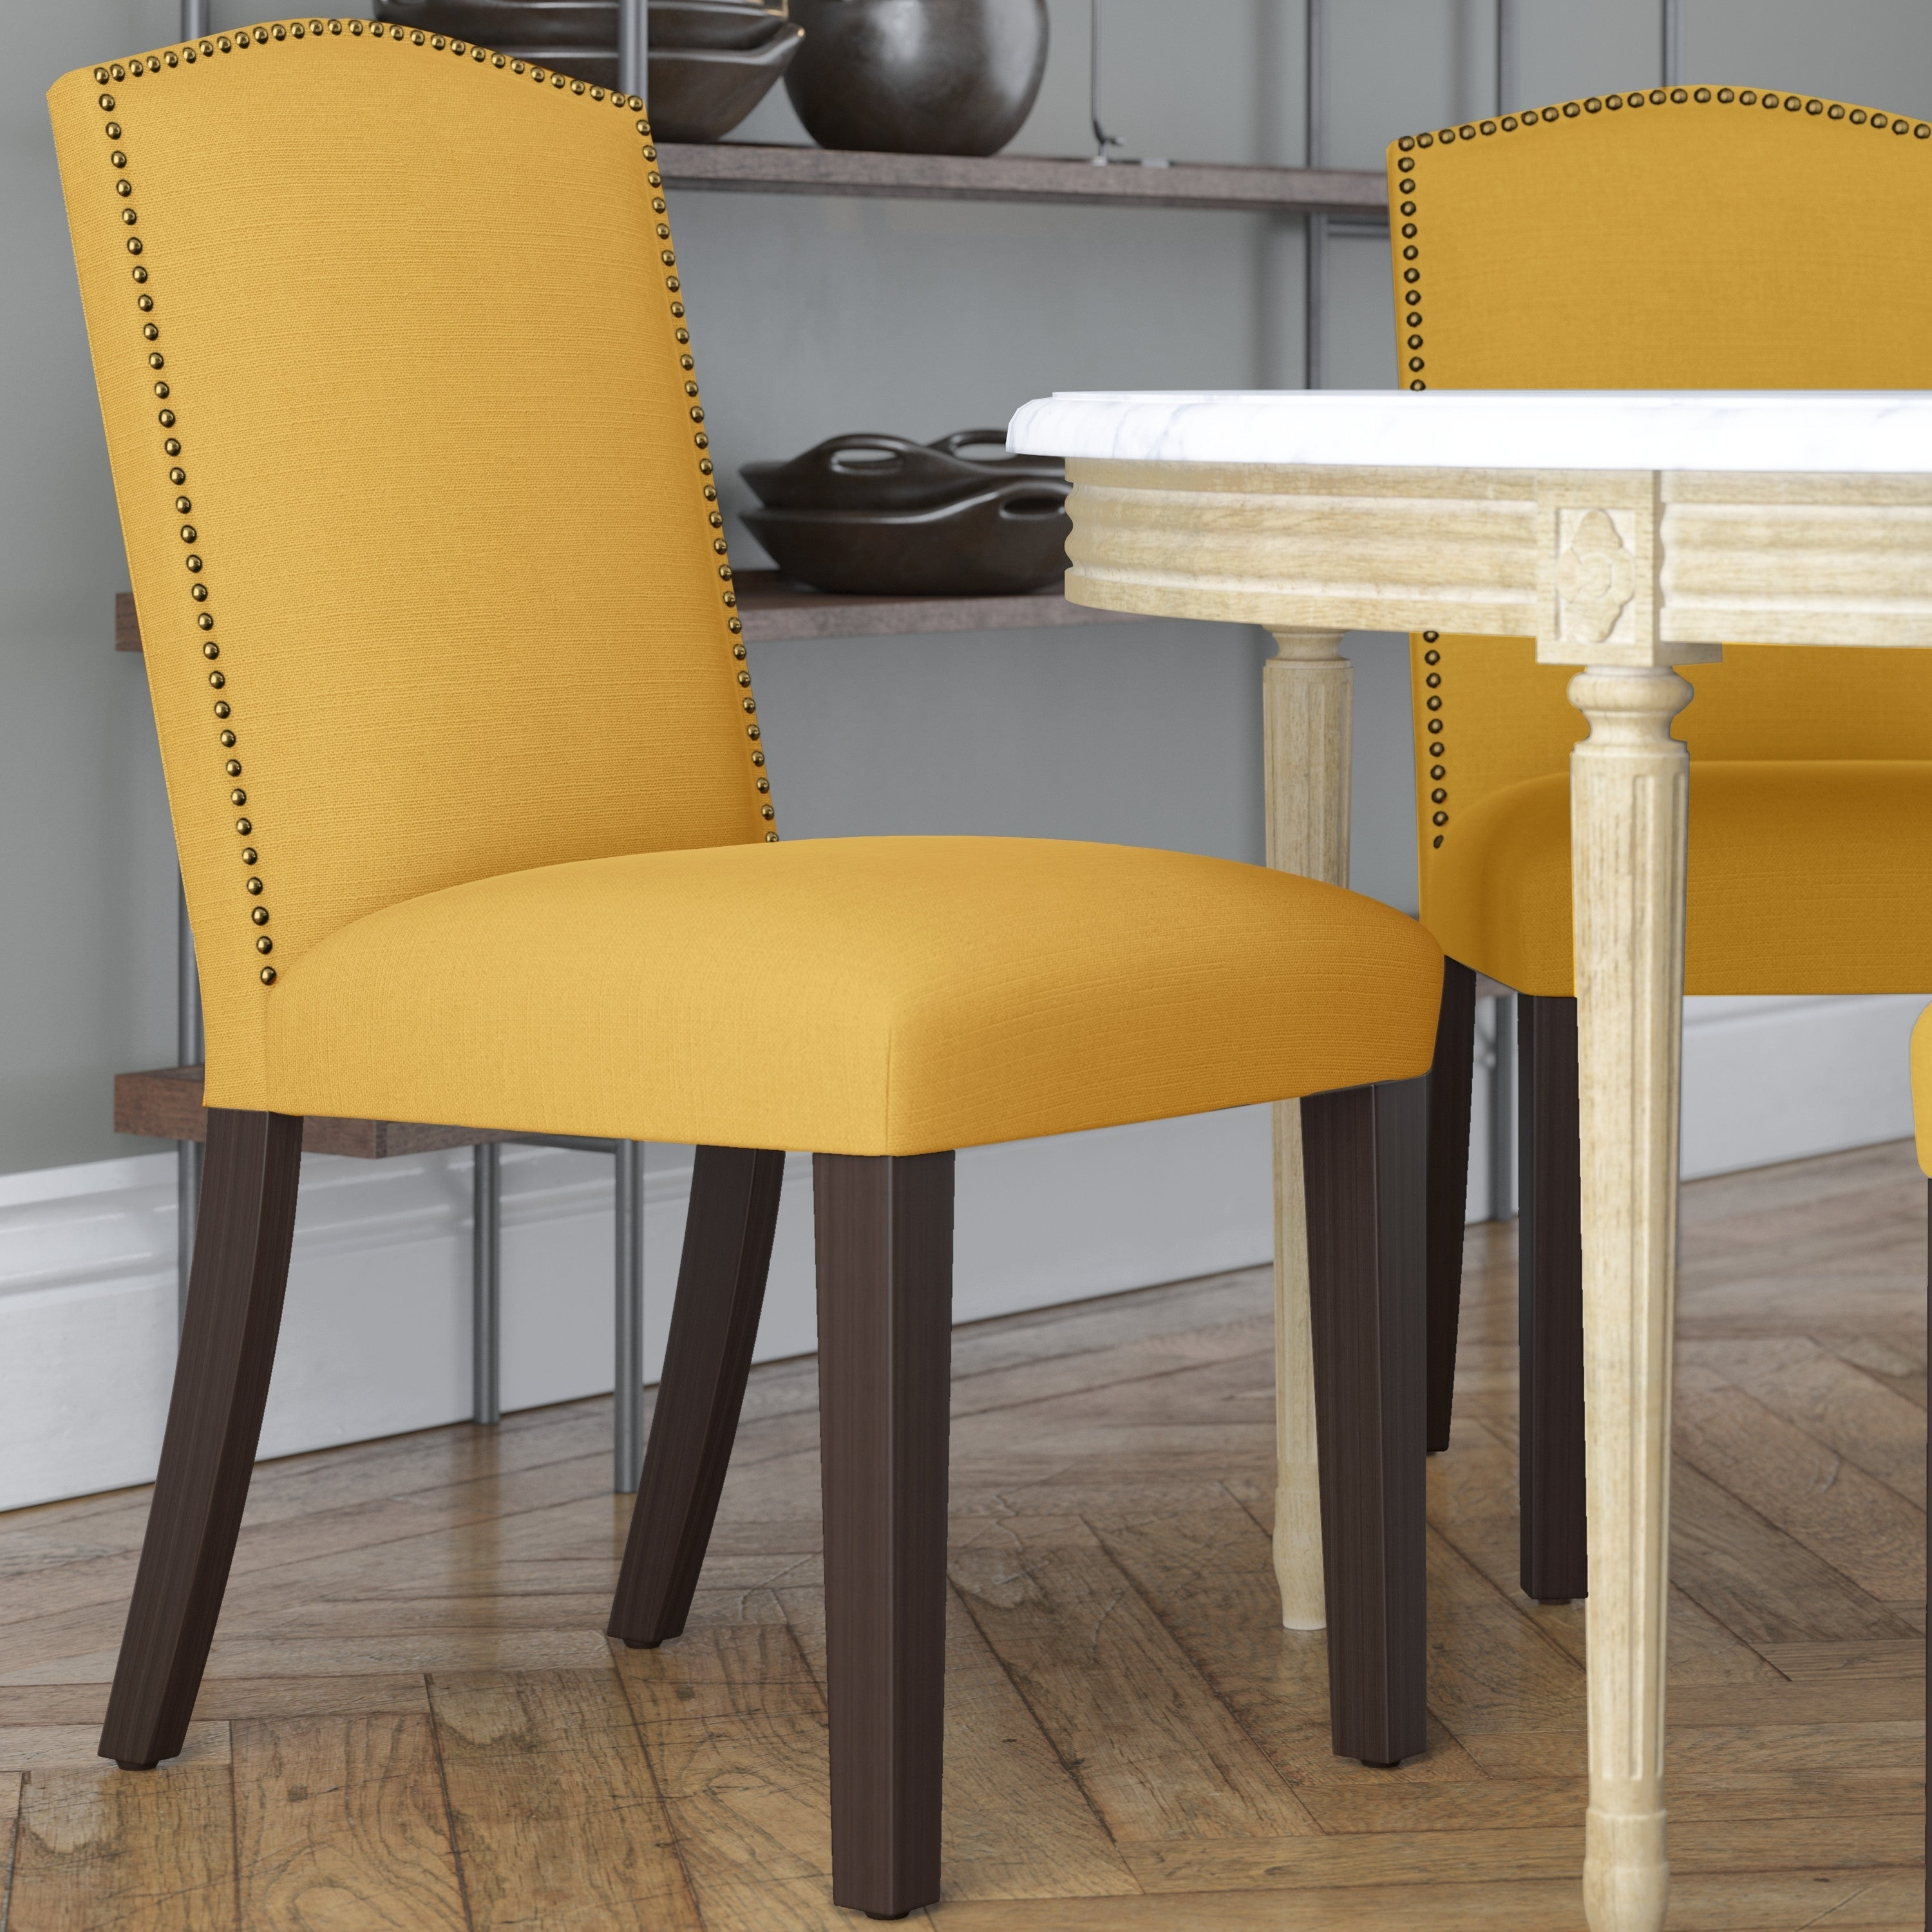 Sensational Skyline Furniture Nail Button Parsons Dining Chair In Linen Yellow Ncnpc Chair Design For Home Ncnpcorg